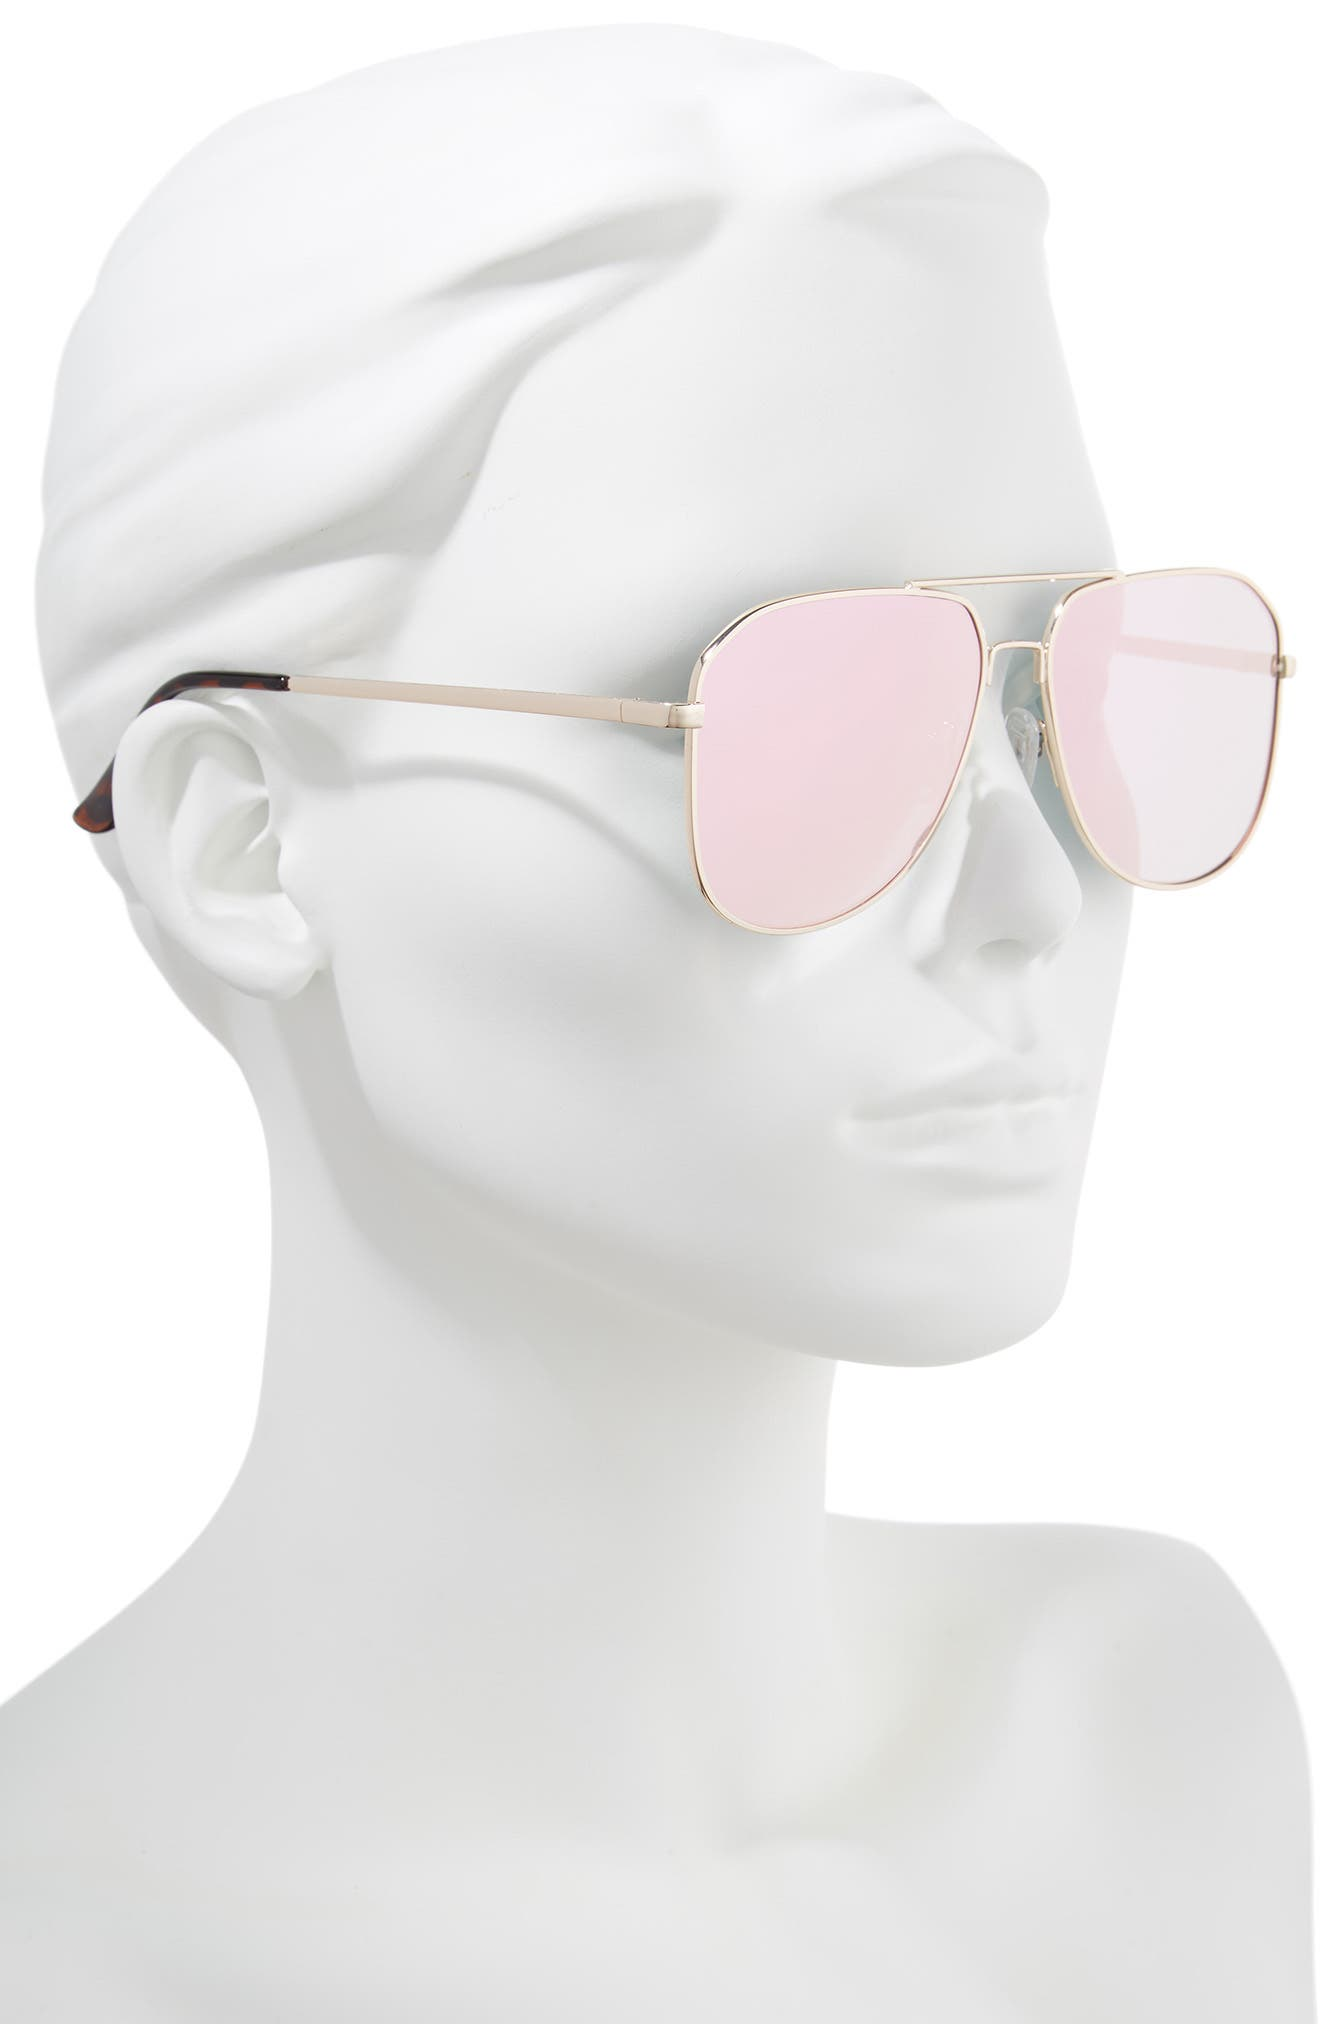 54mm Aviator Sunglasses,                             Alternate thumbnail 2, color,                             Gold/ Pink